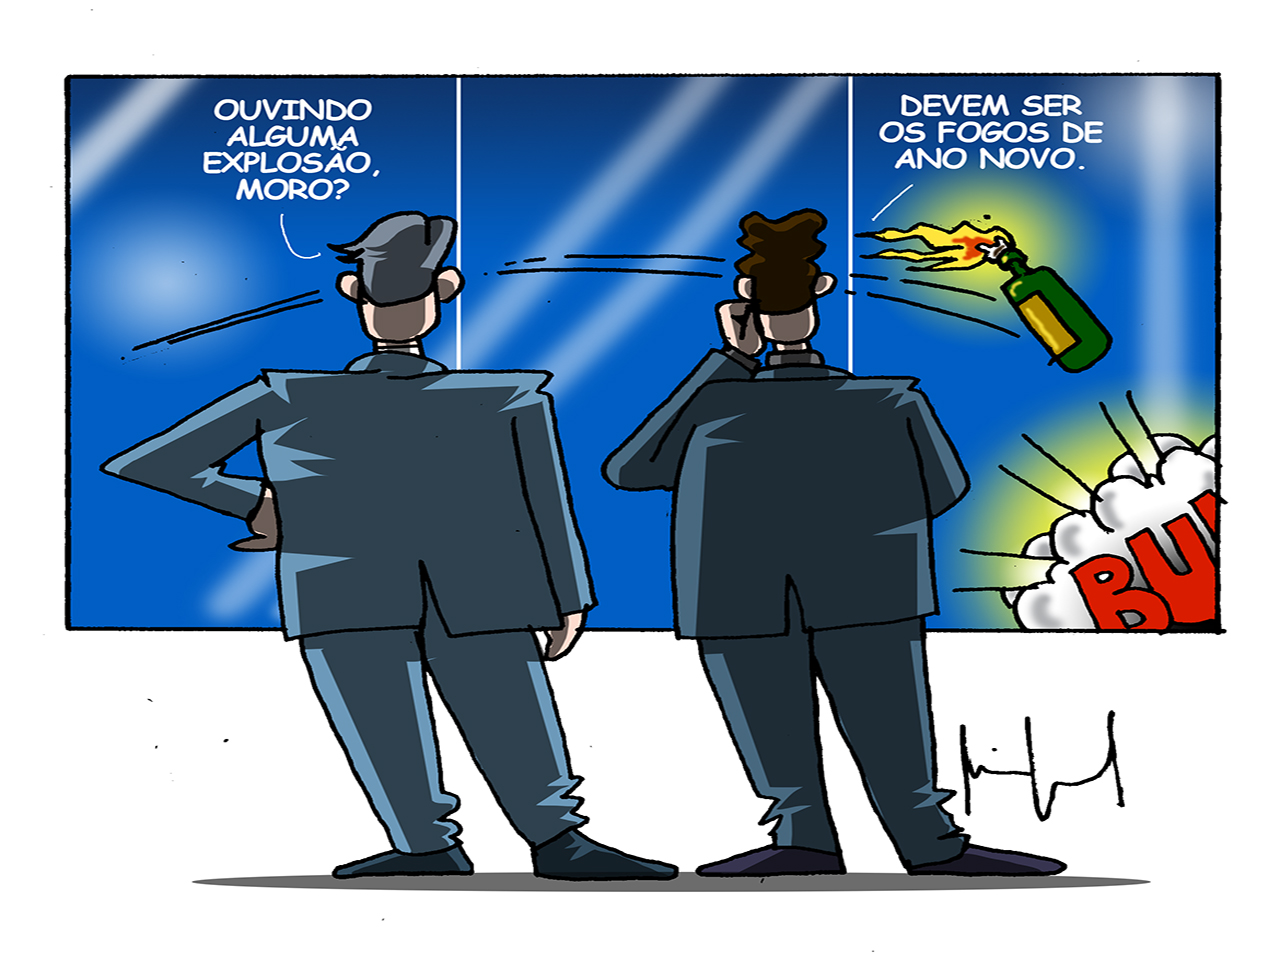 charge Miguel Paiva